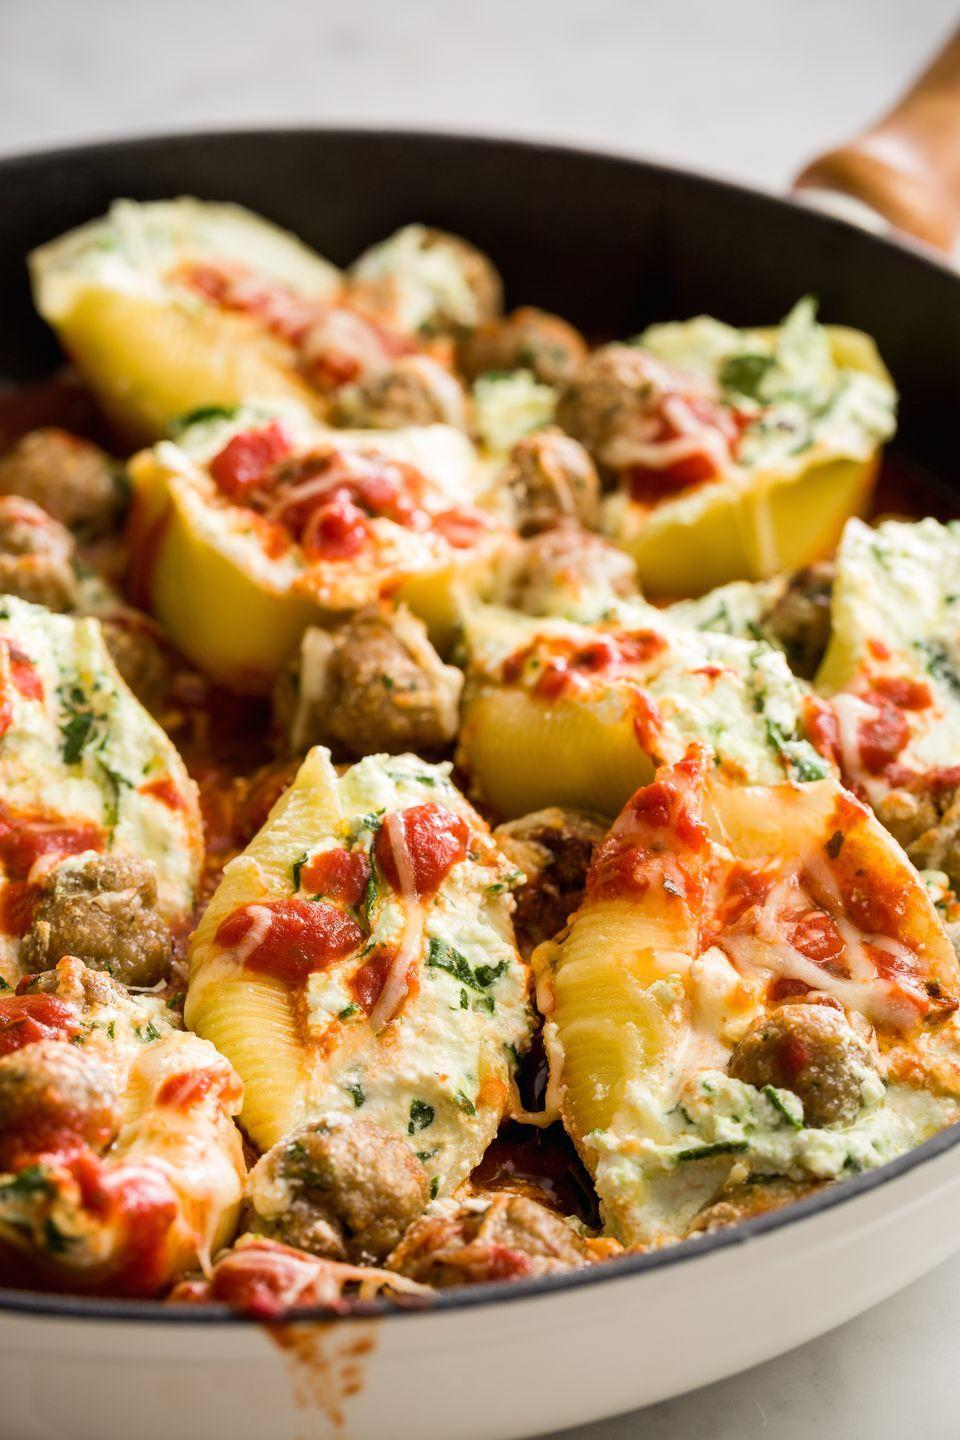 """<p>Mini turkey meatballs take these meaty shells to the next level.</p><p>Get the recipe from <a href=""""https://www.delish.com/cooking/recipe-ideas/recipes/a45726/spinach-stuffed-shells-with-mini-turkey-meatballs-recipe/"""" rel=""""nofollow noopener"""" target=""""_blank"""" data-ylk=""""slk:Delish"""" class=""""link rapid-noclick-resp"""">Delish</a>. </p>"""